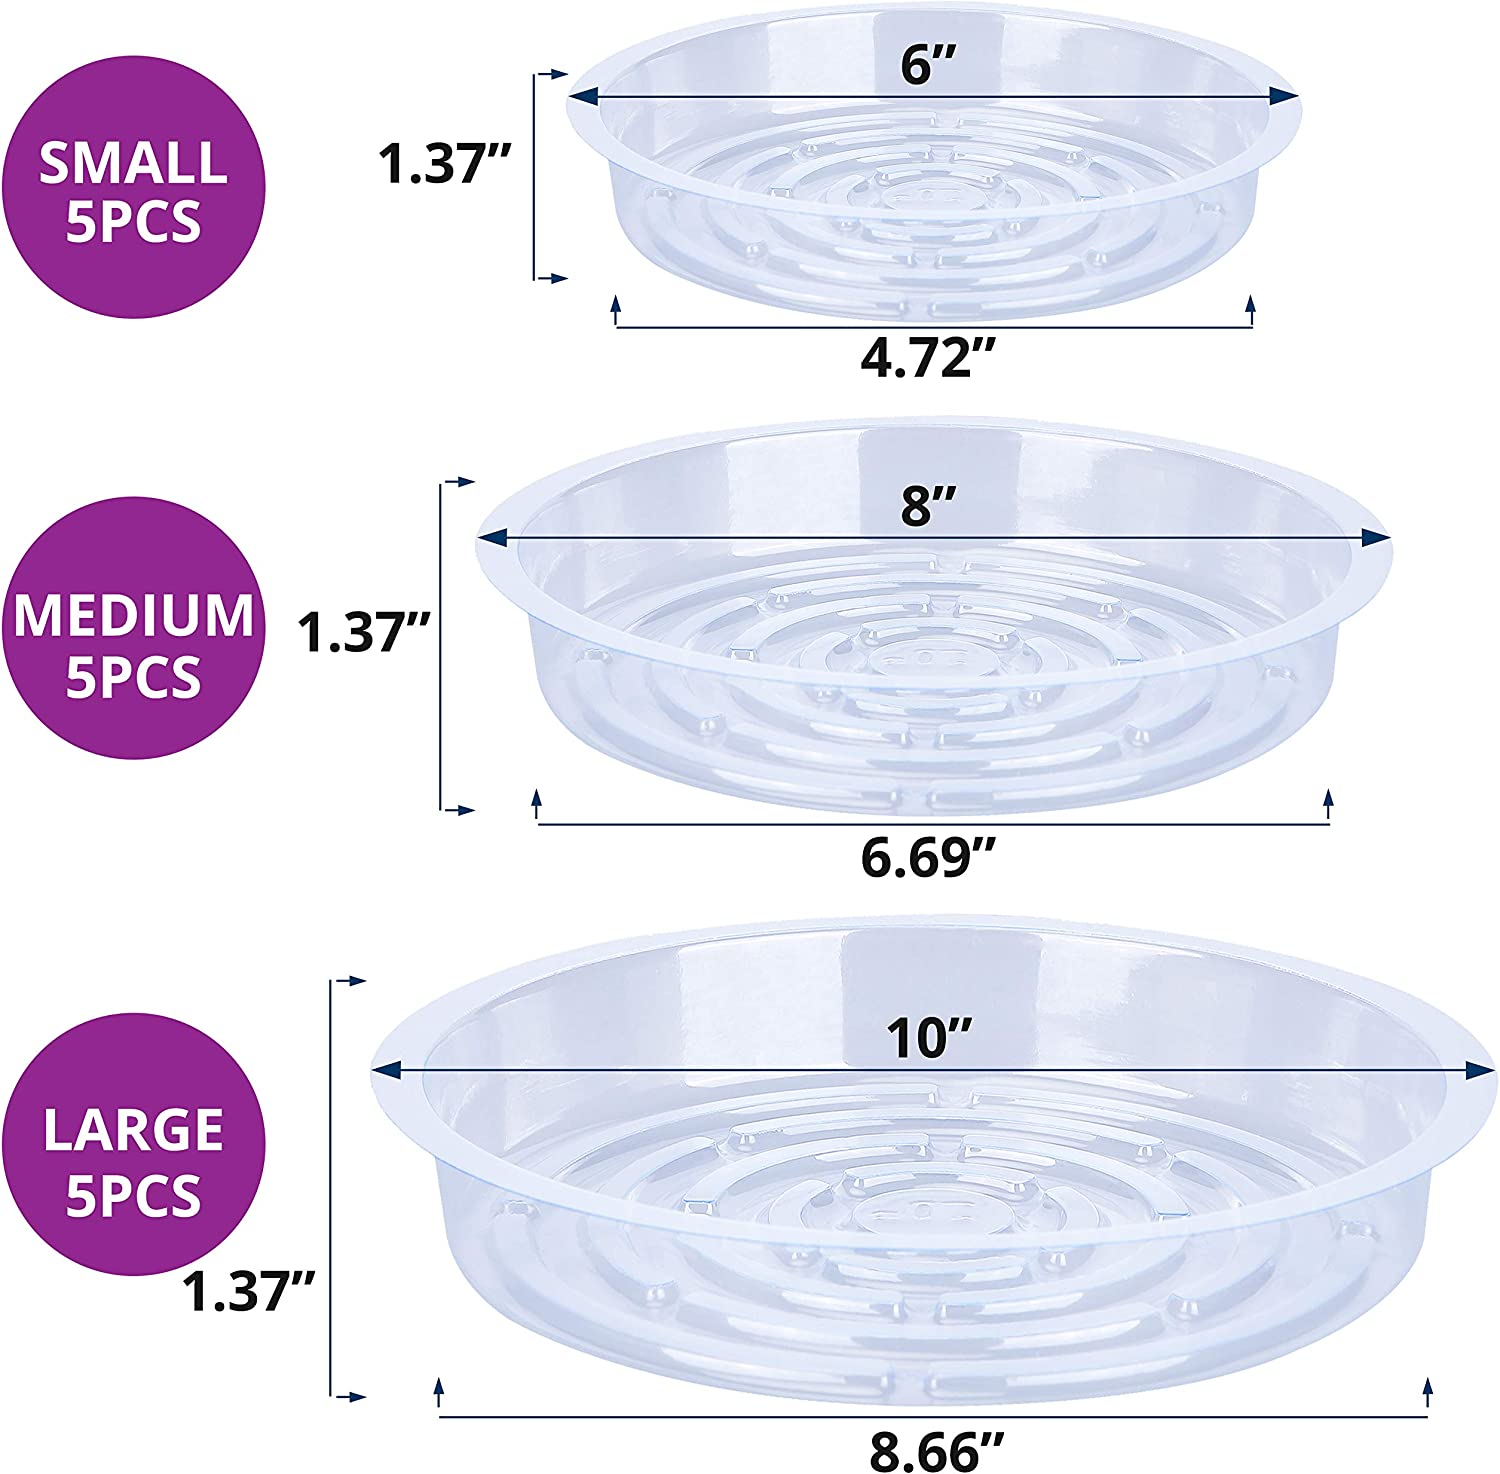 Konanzo Plant Saucer 15 Pack of Clear Plastic Saucers Drip Trays in Assorted Sizes (6 inch/8inch/10inch) Flower Pot Tray for Indoors & Outdoor Plants or Planter pots. (1, 6, 8, 10 inch) : Garden & Outdoor